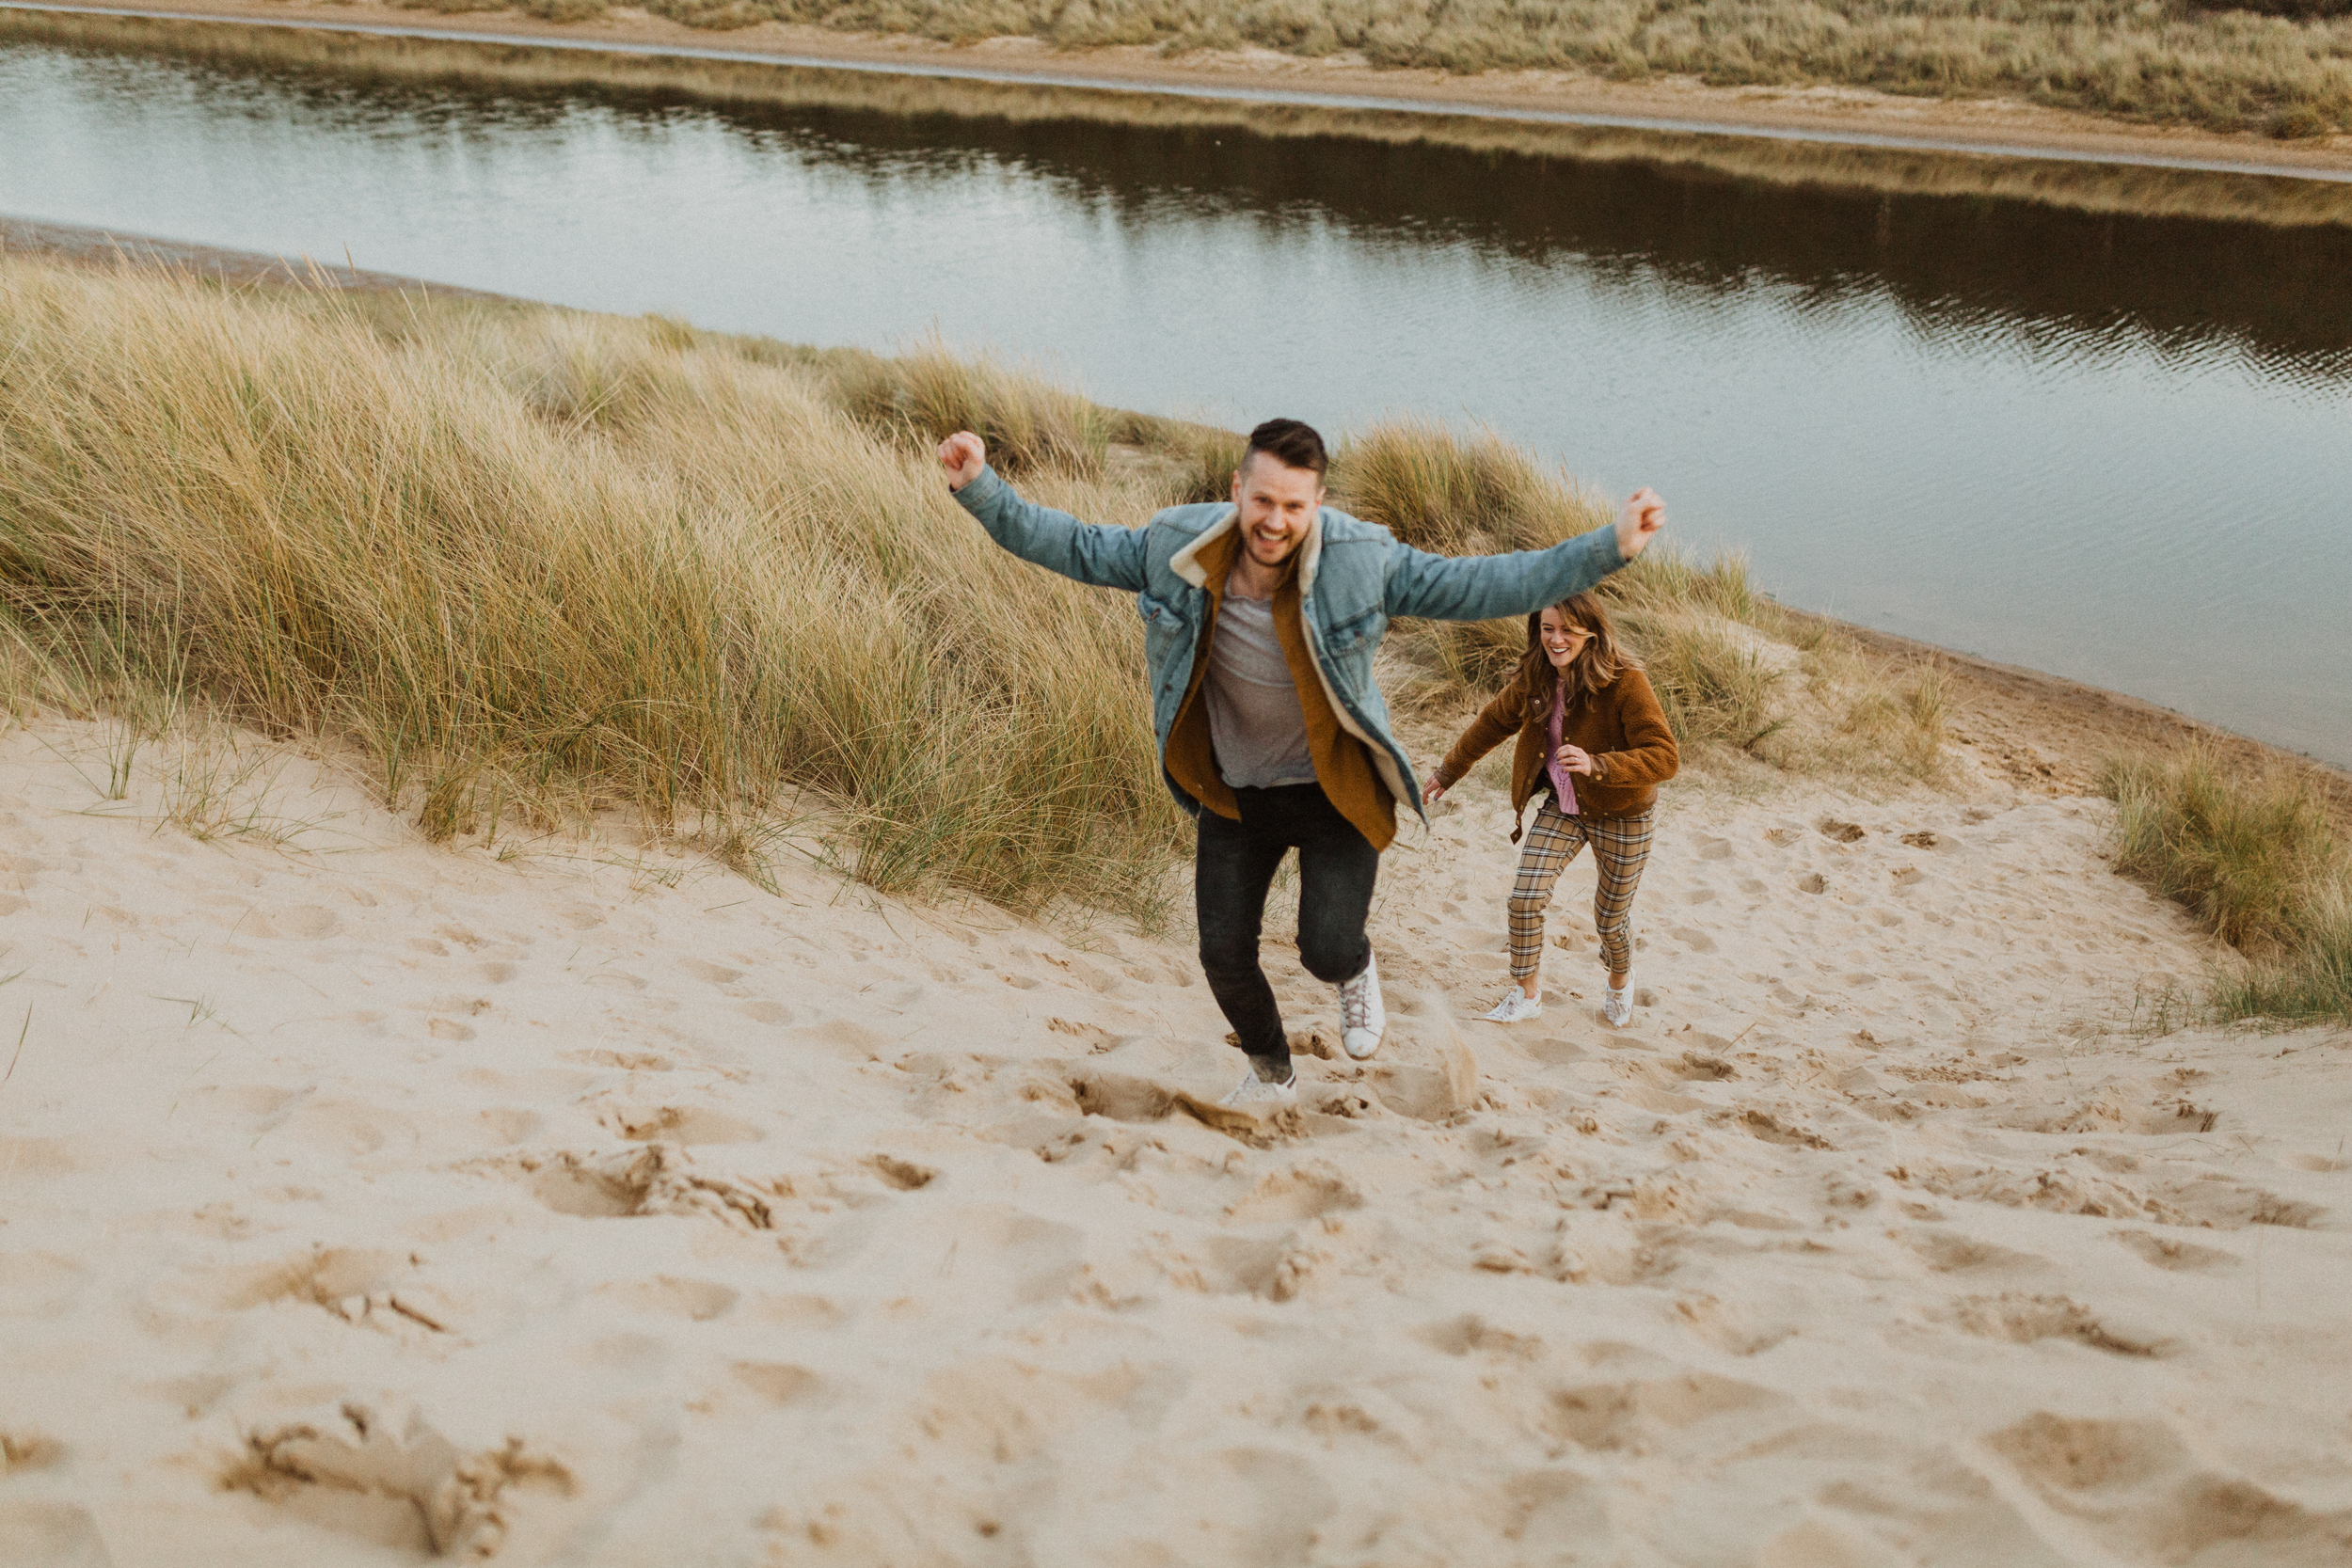 Claire-Liam-Beach-Coastal-Engagement-Session-Norfolk-Darina-Stoda-Photography-22.jpg